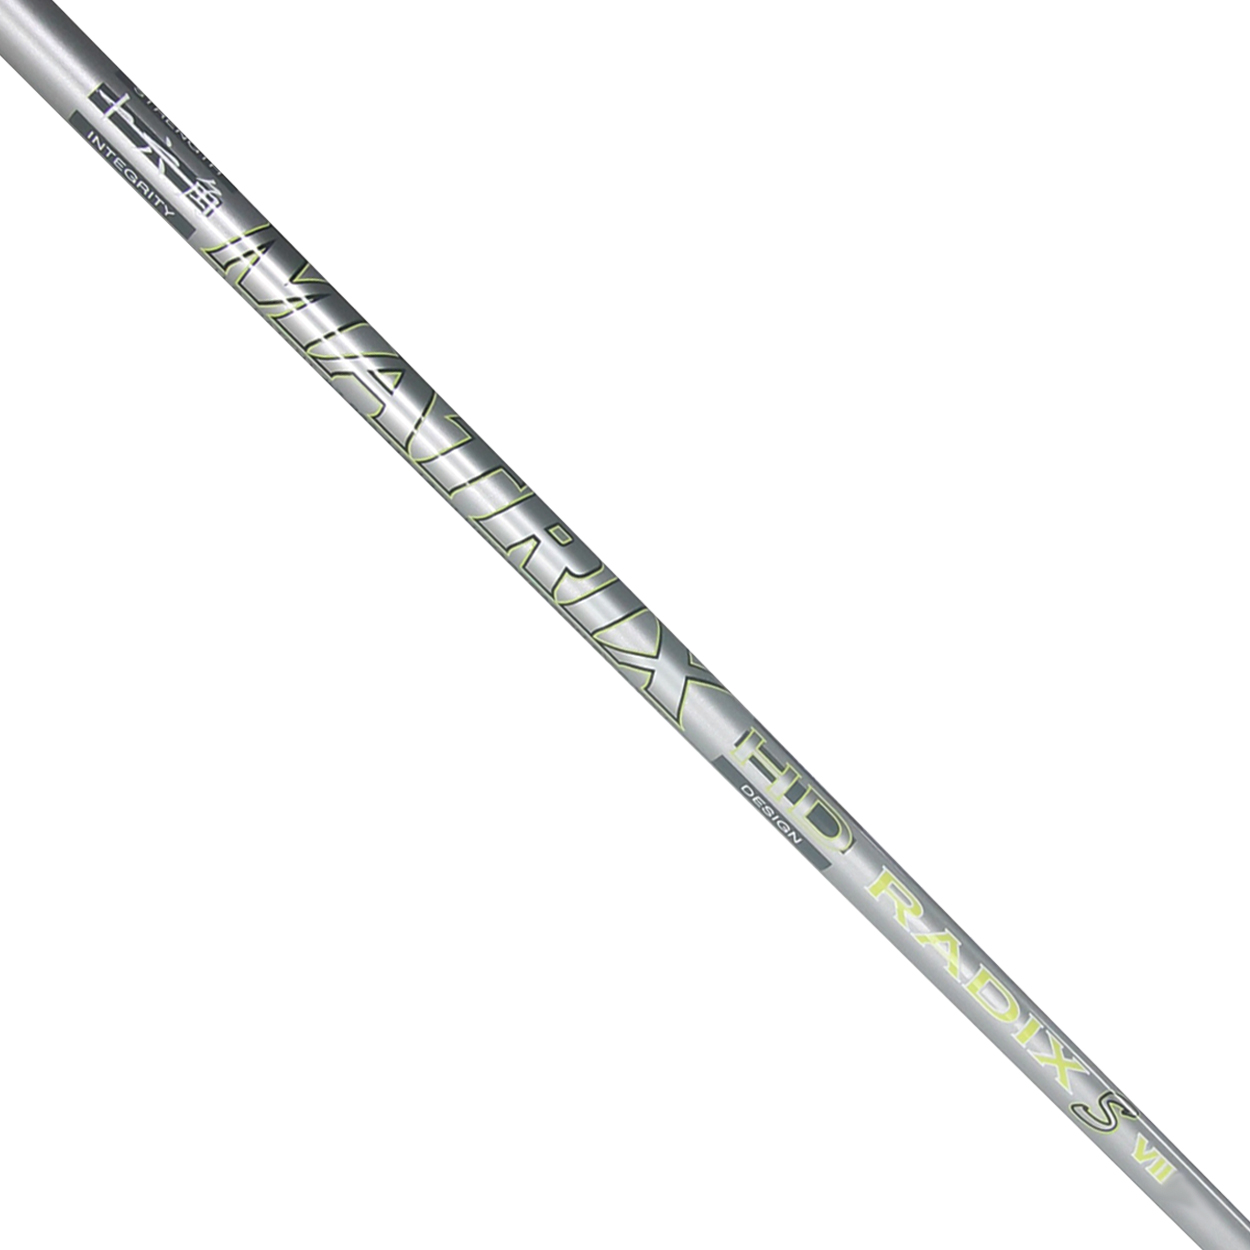 Matrix Radix S VII Graphite Golf Shaft, 46